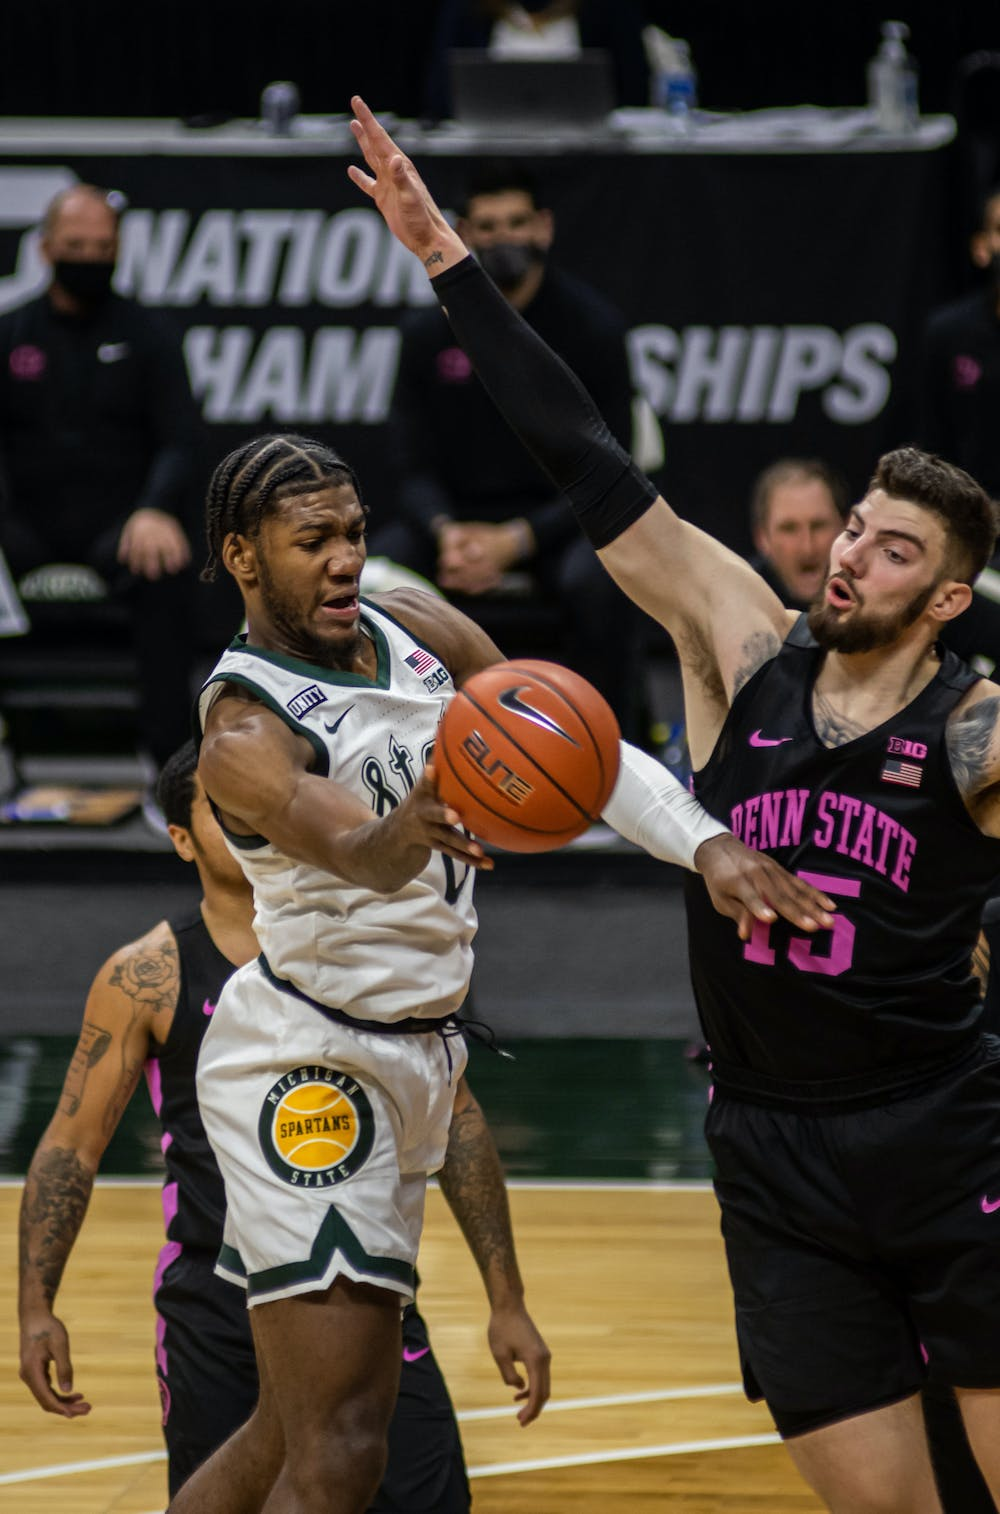 <p>Junior forward Aaron Henry drives into the lane and passes. Henry&#x27;s 20-point night helped the Spartans win against Penn State on Feb. 9, 2021.</p>